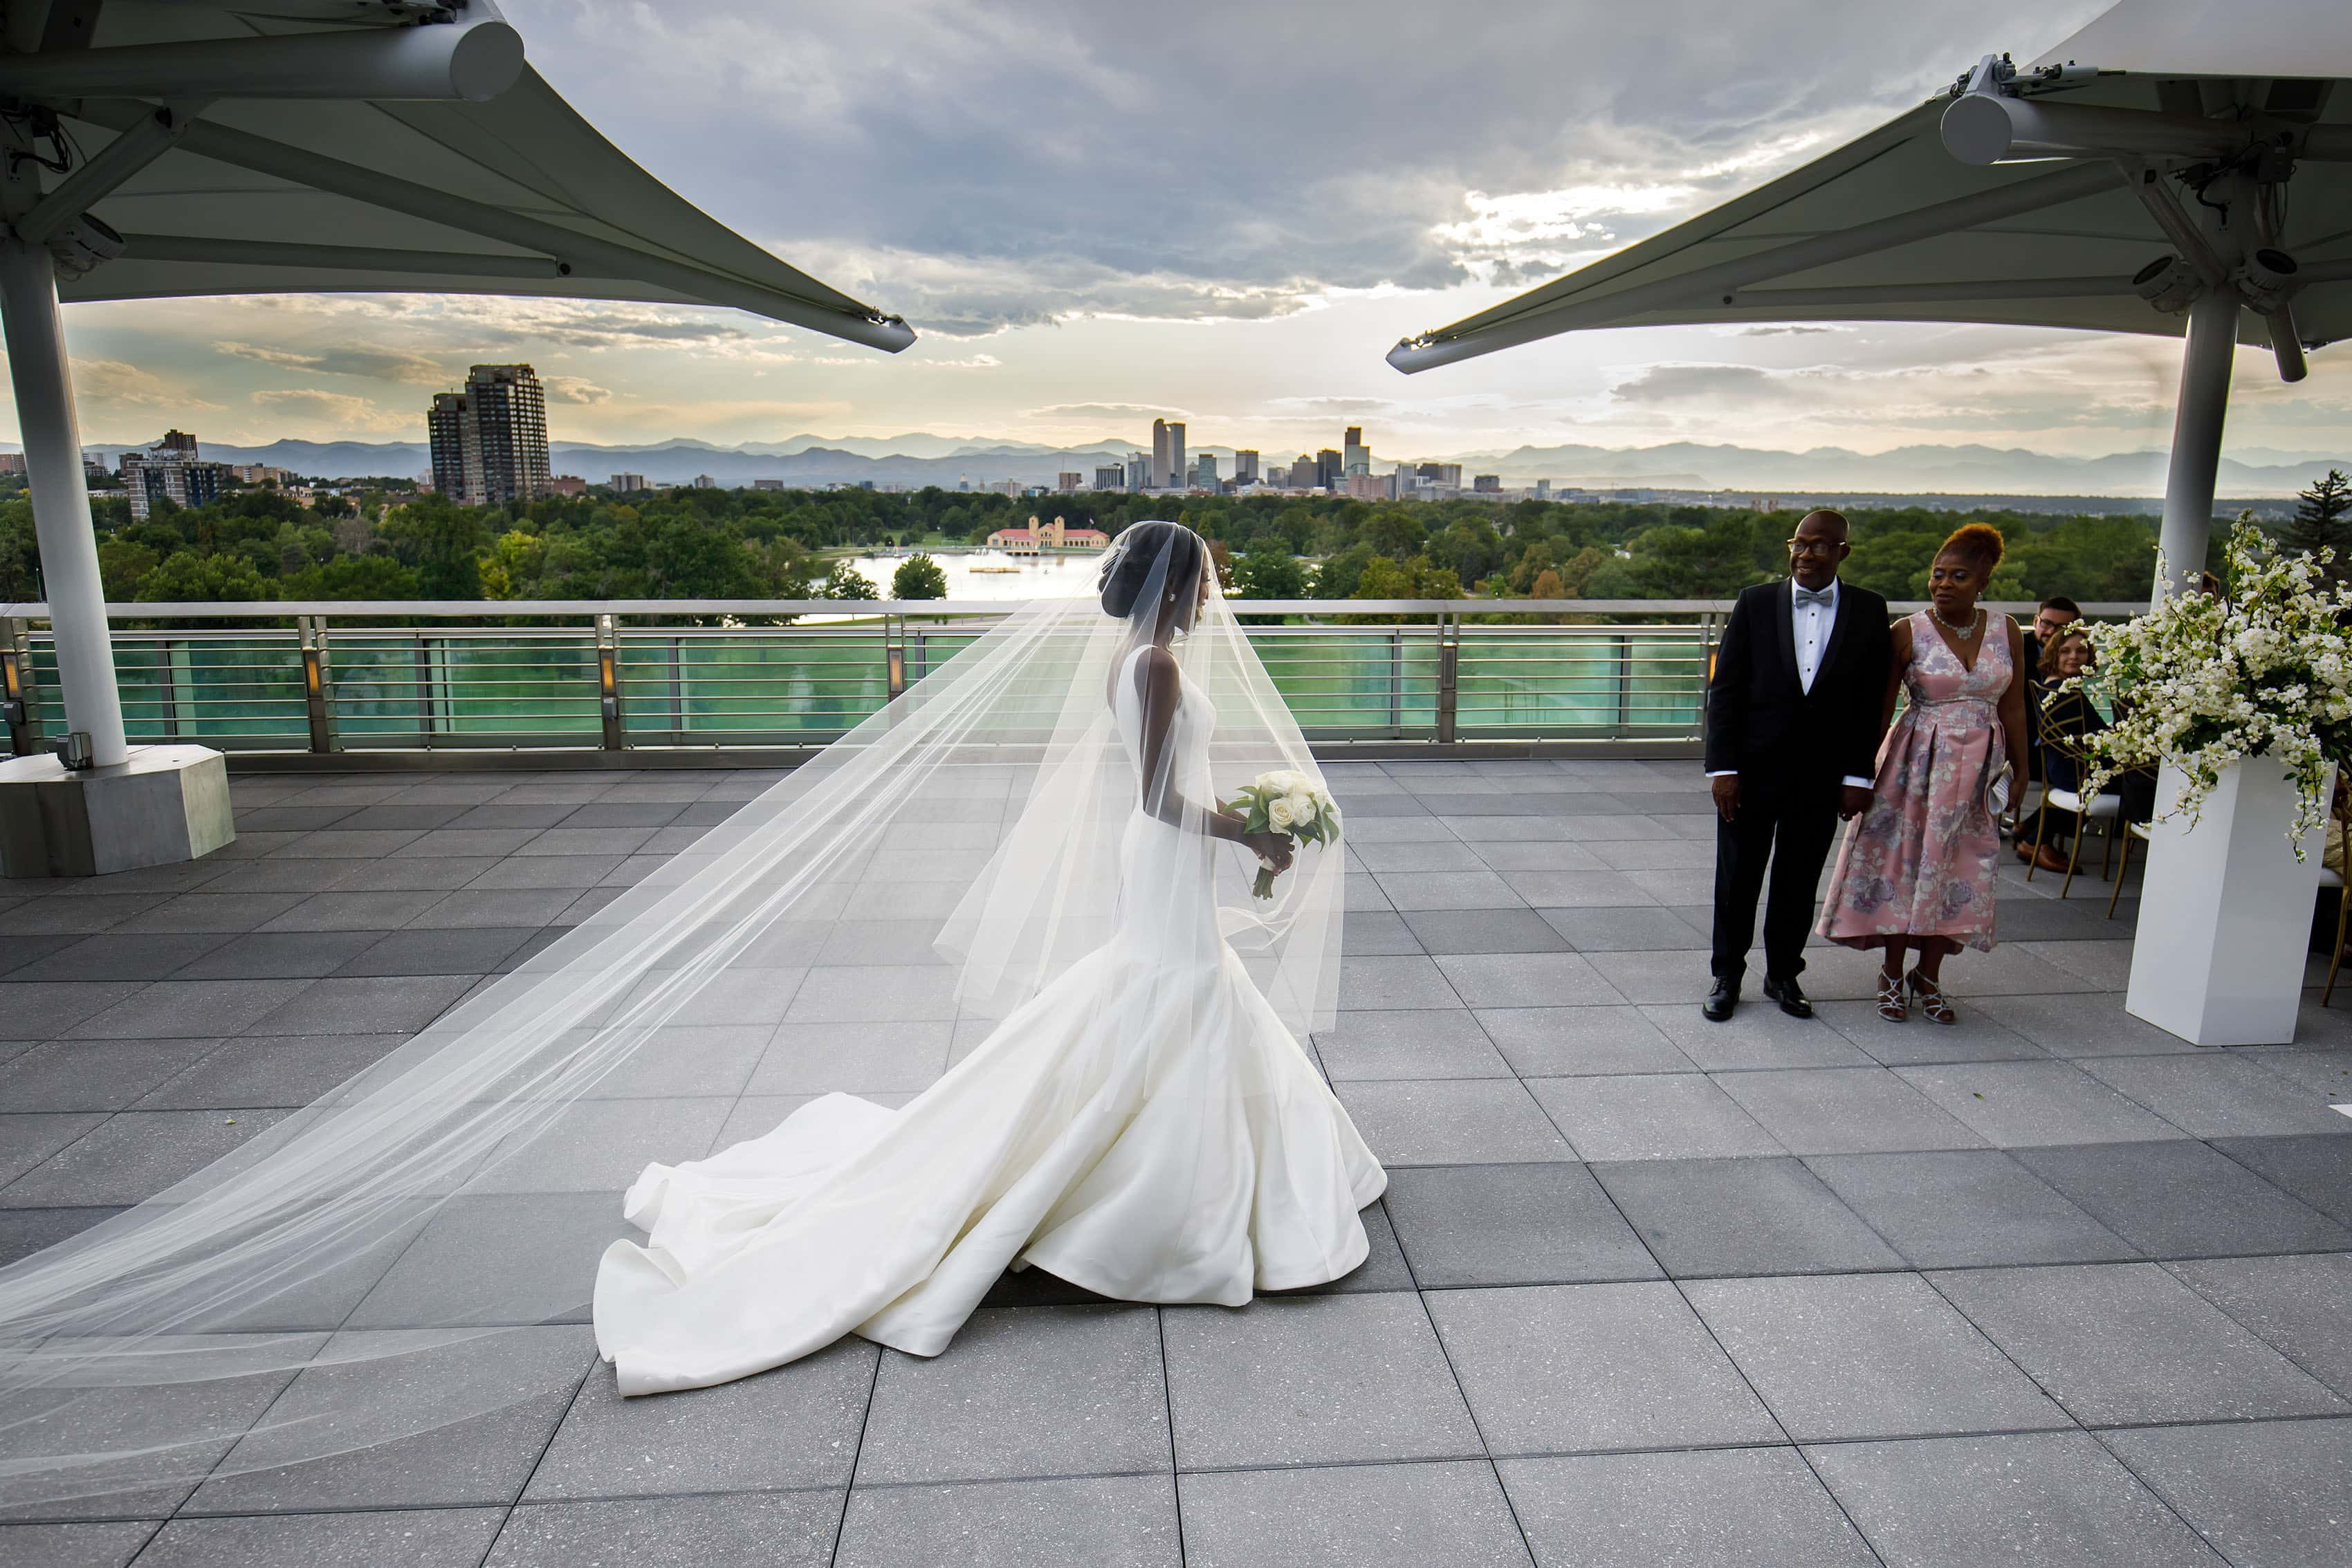 The bride walks down the aisle on the rooftop at the Denver Museum of Nature and Science during her wedding